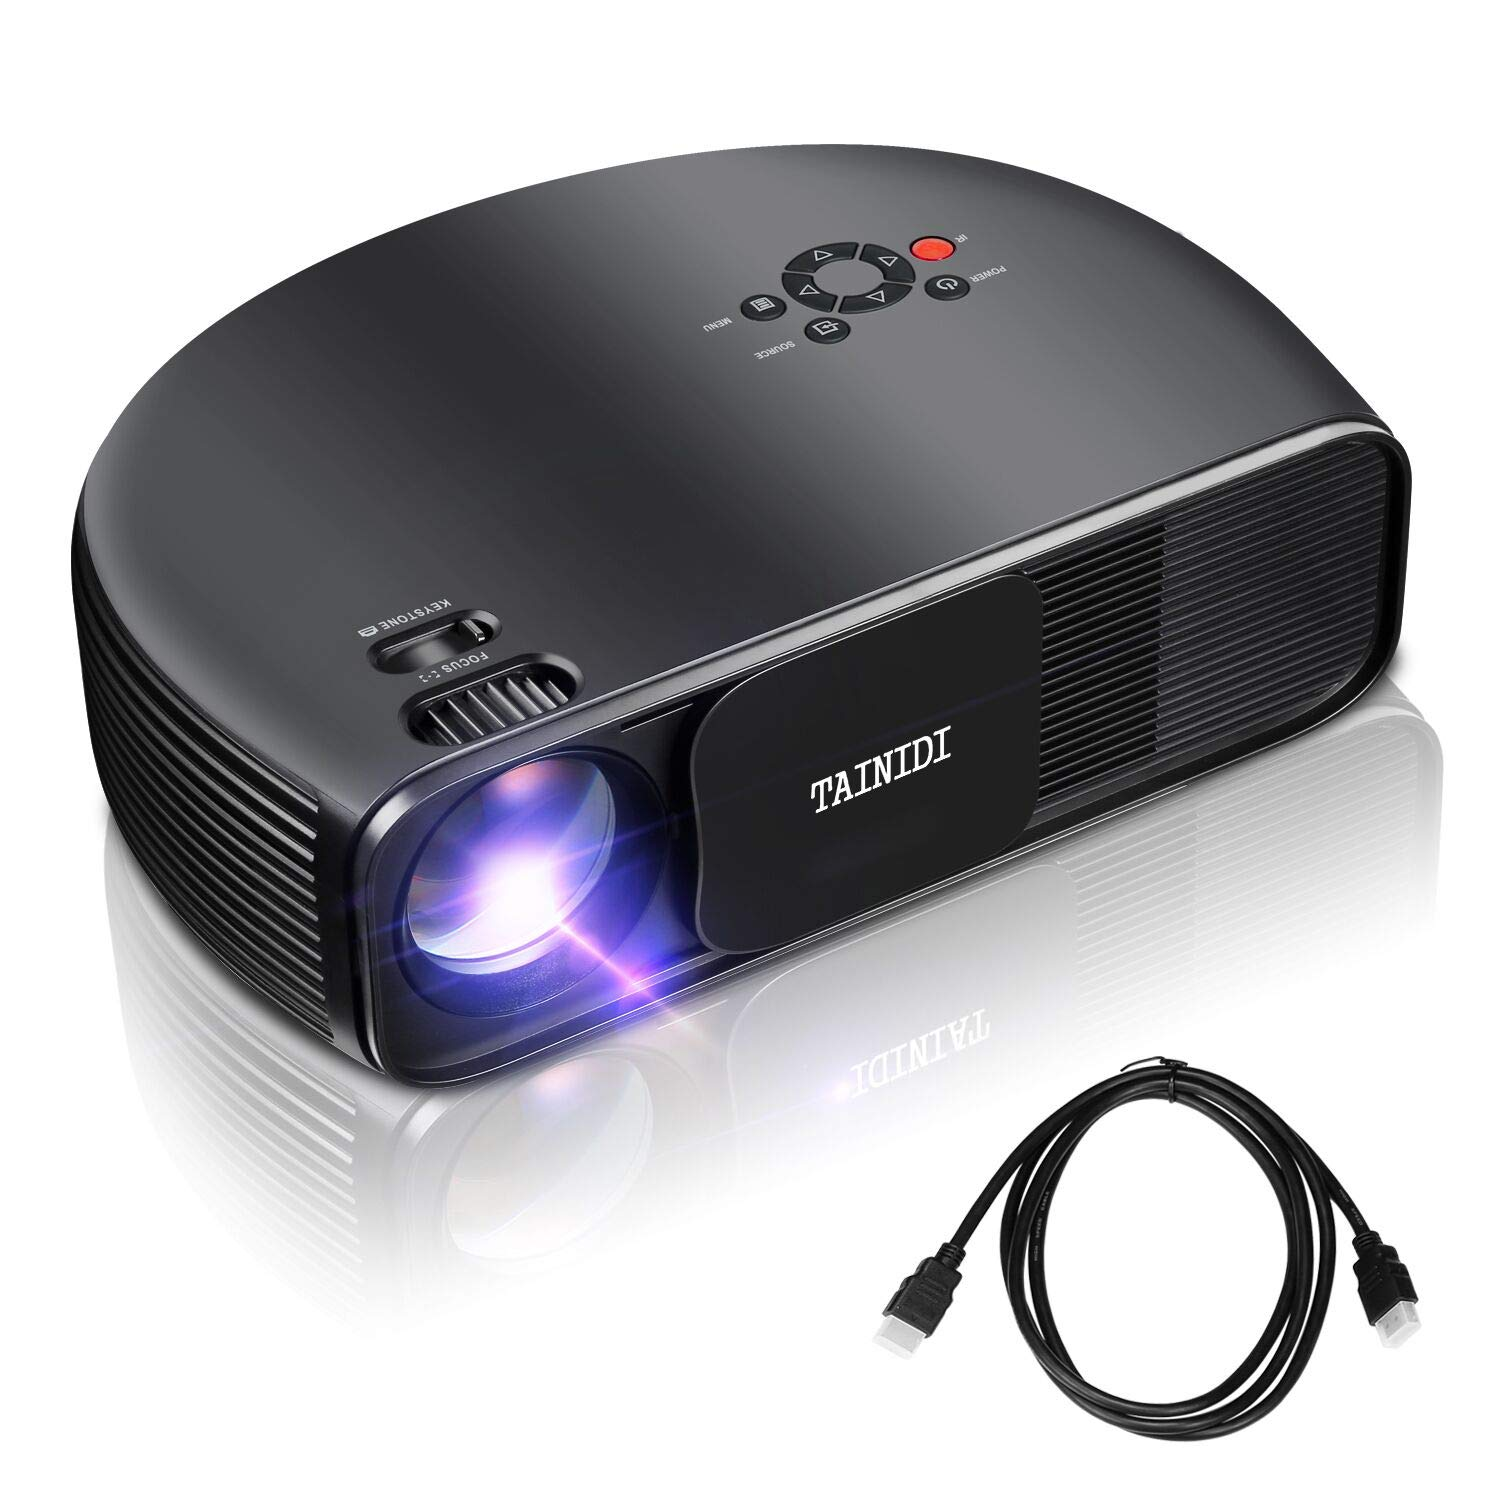 TAINIDI CL760 Video Projector